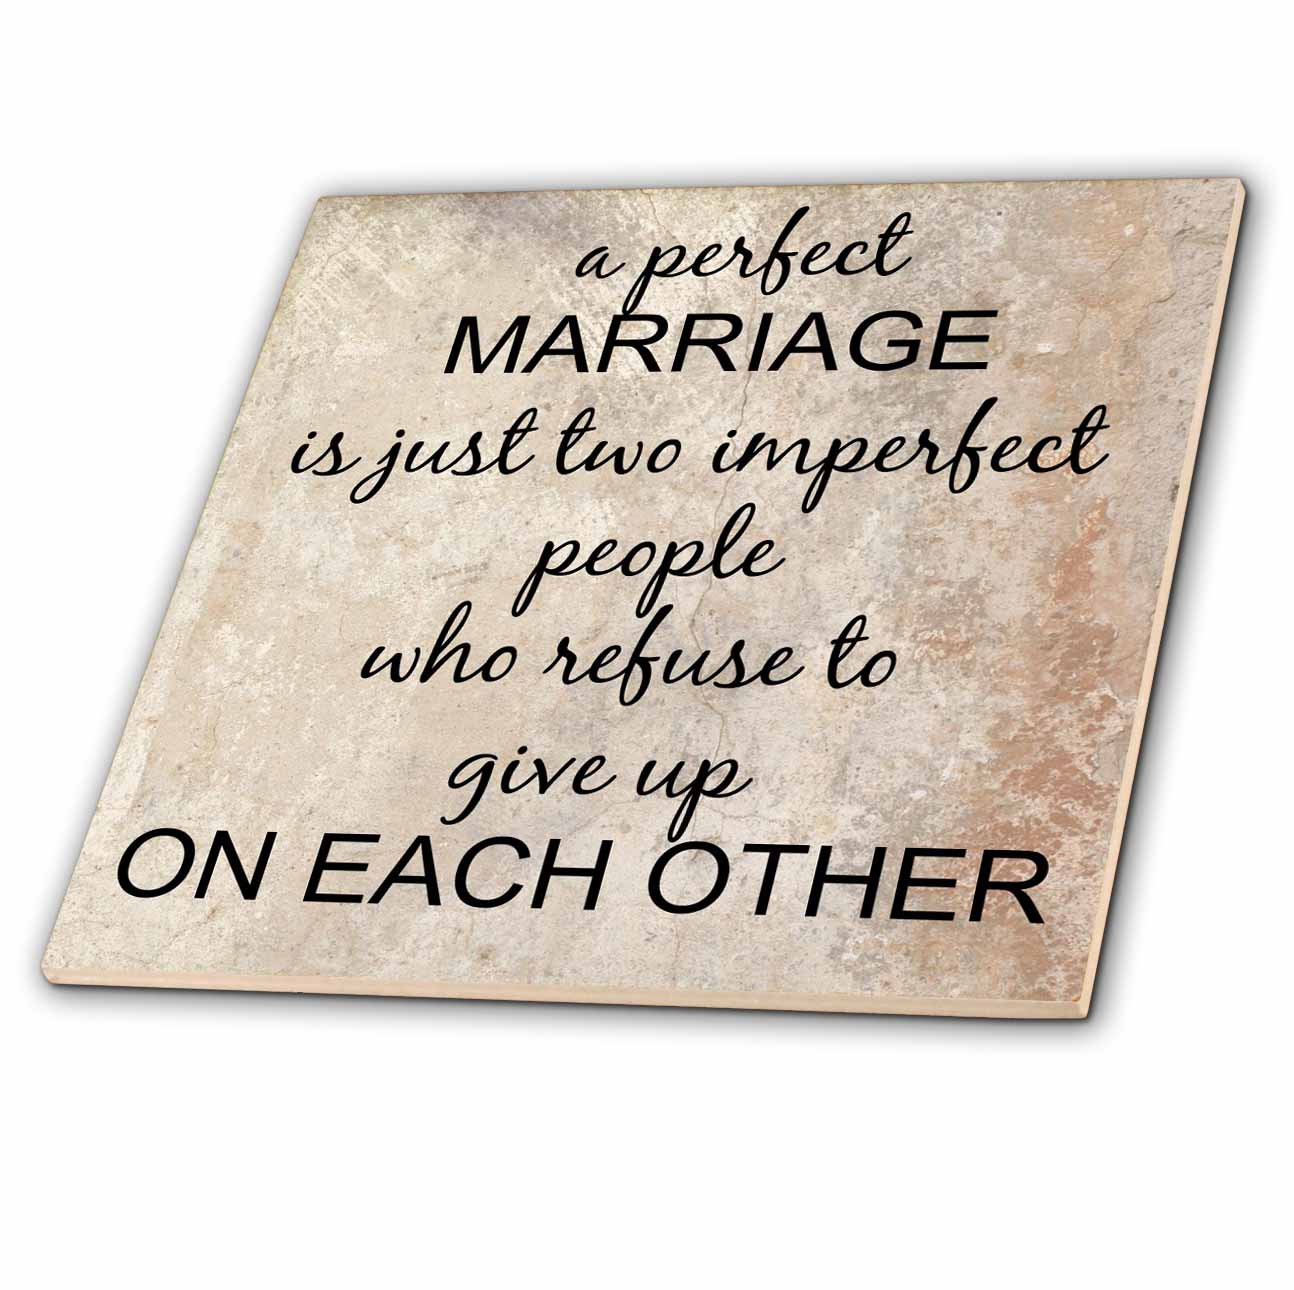 3dRose a perfect marriage, black lettering on picture of marble print background - Ceramic Tile, 12-inch